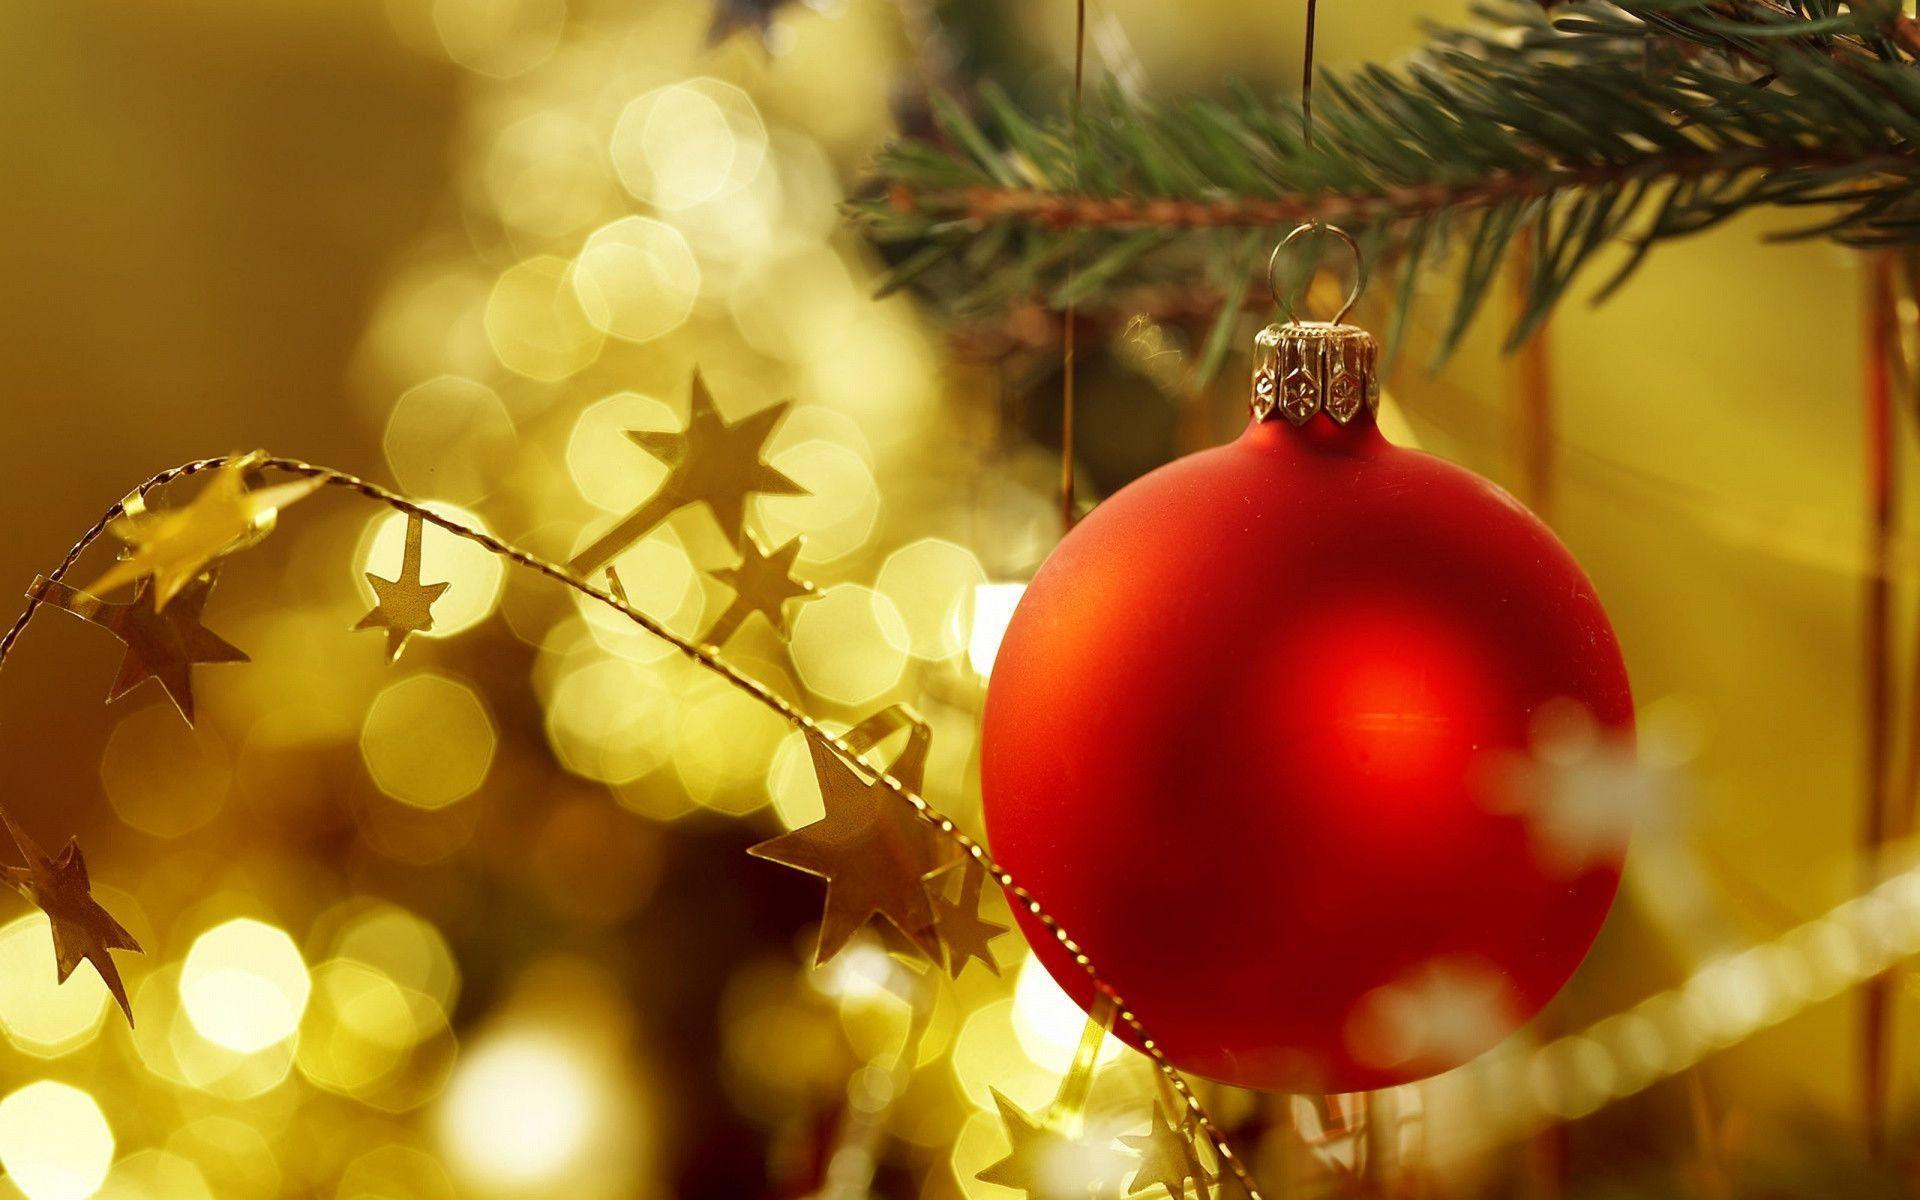 Wallpapers For > Christmas Ornament Backgrounds